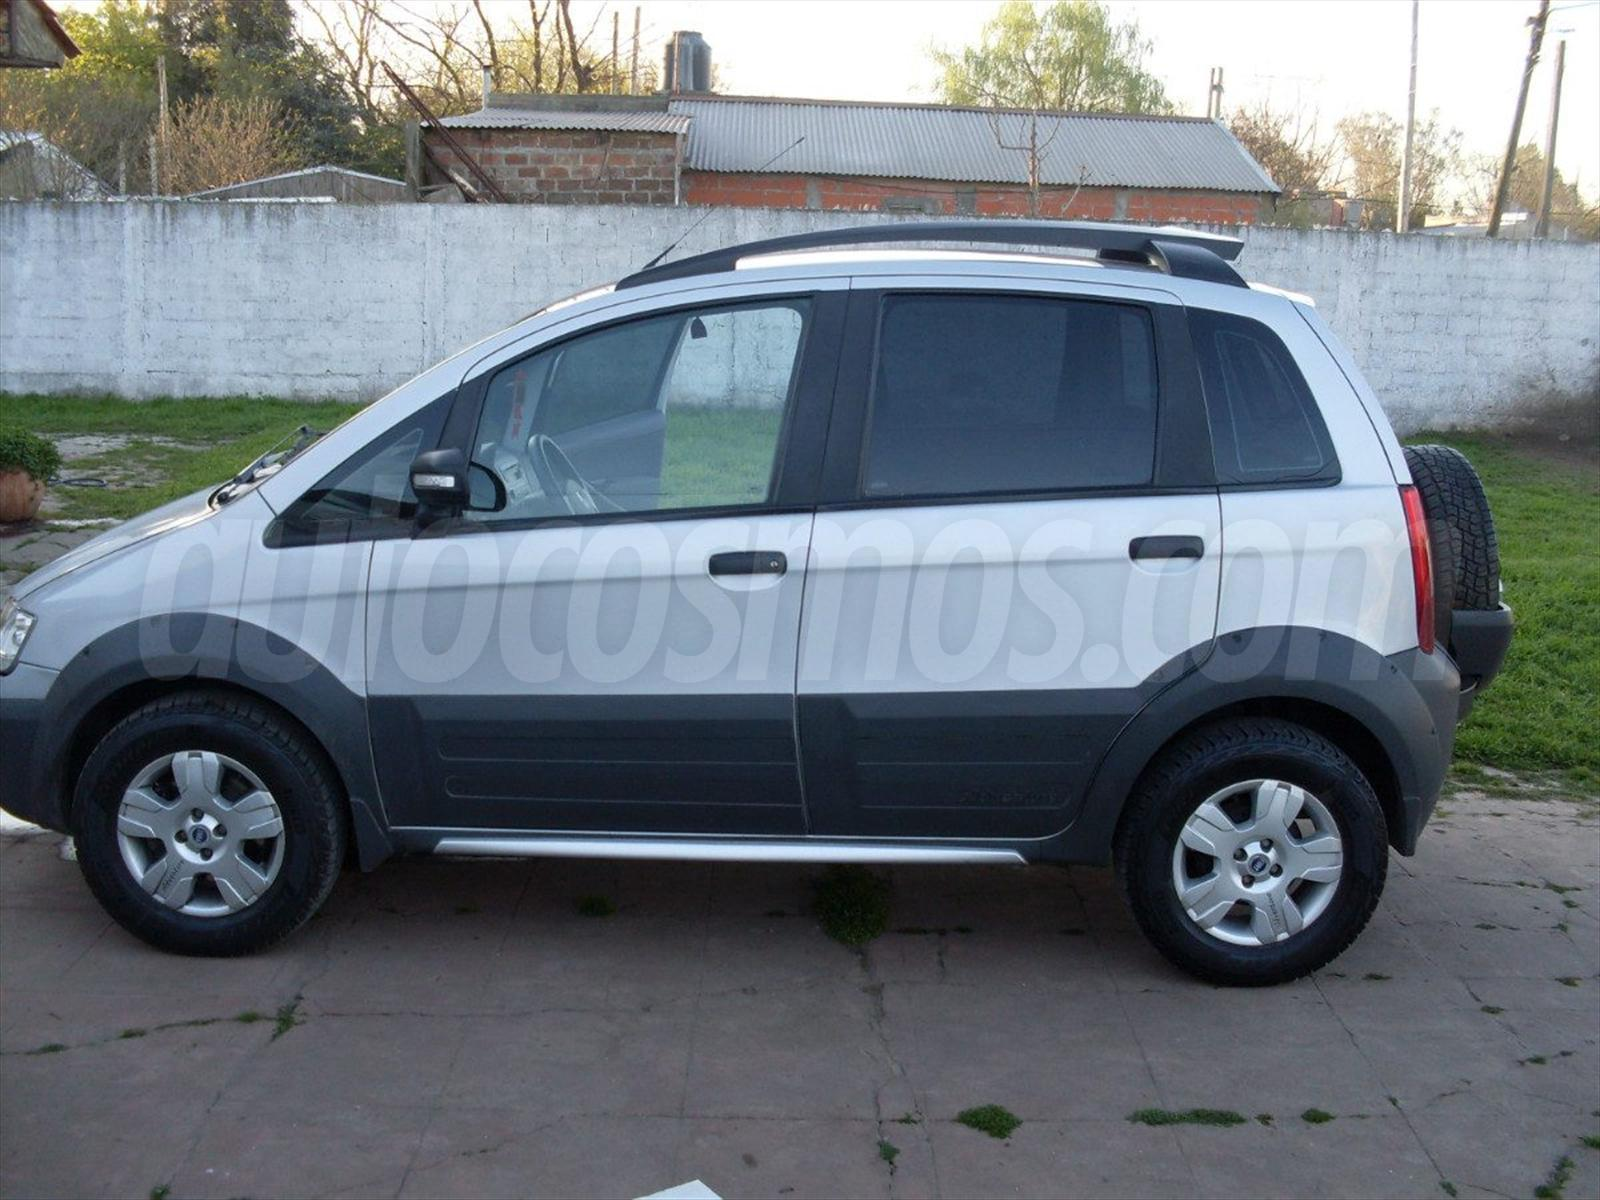 Venta autos usado tucuman fiat idea 1 8 adventure confort for Repuestos fiat idea adventure precios